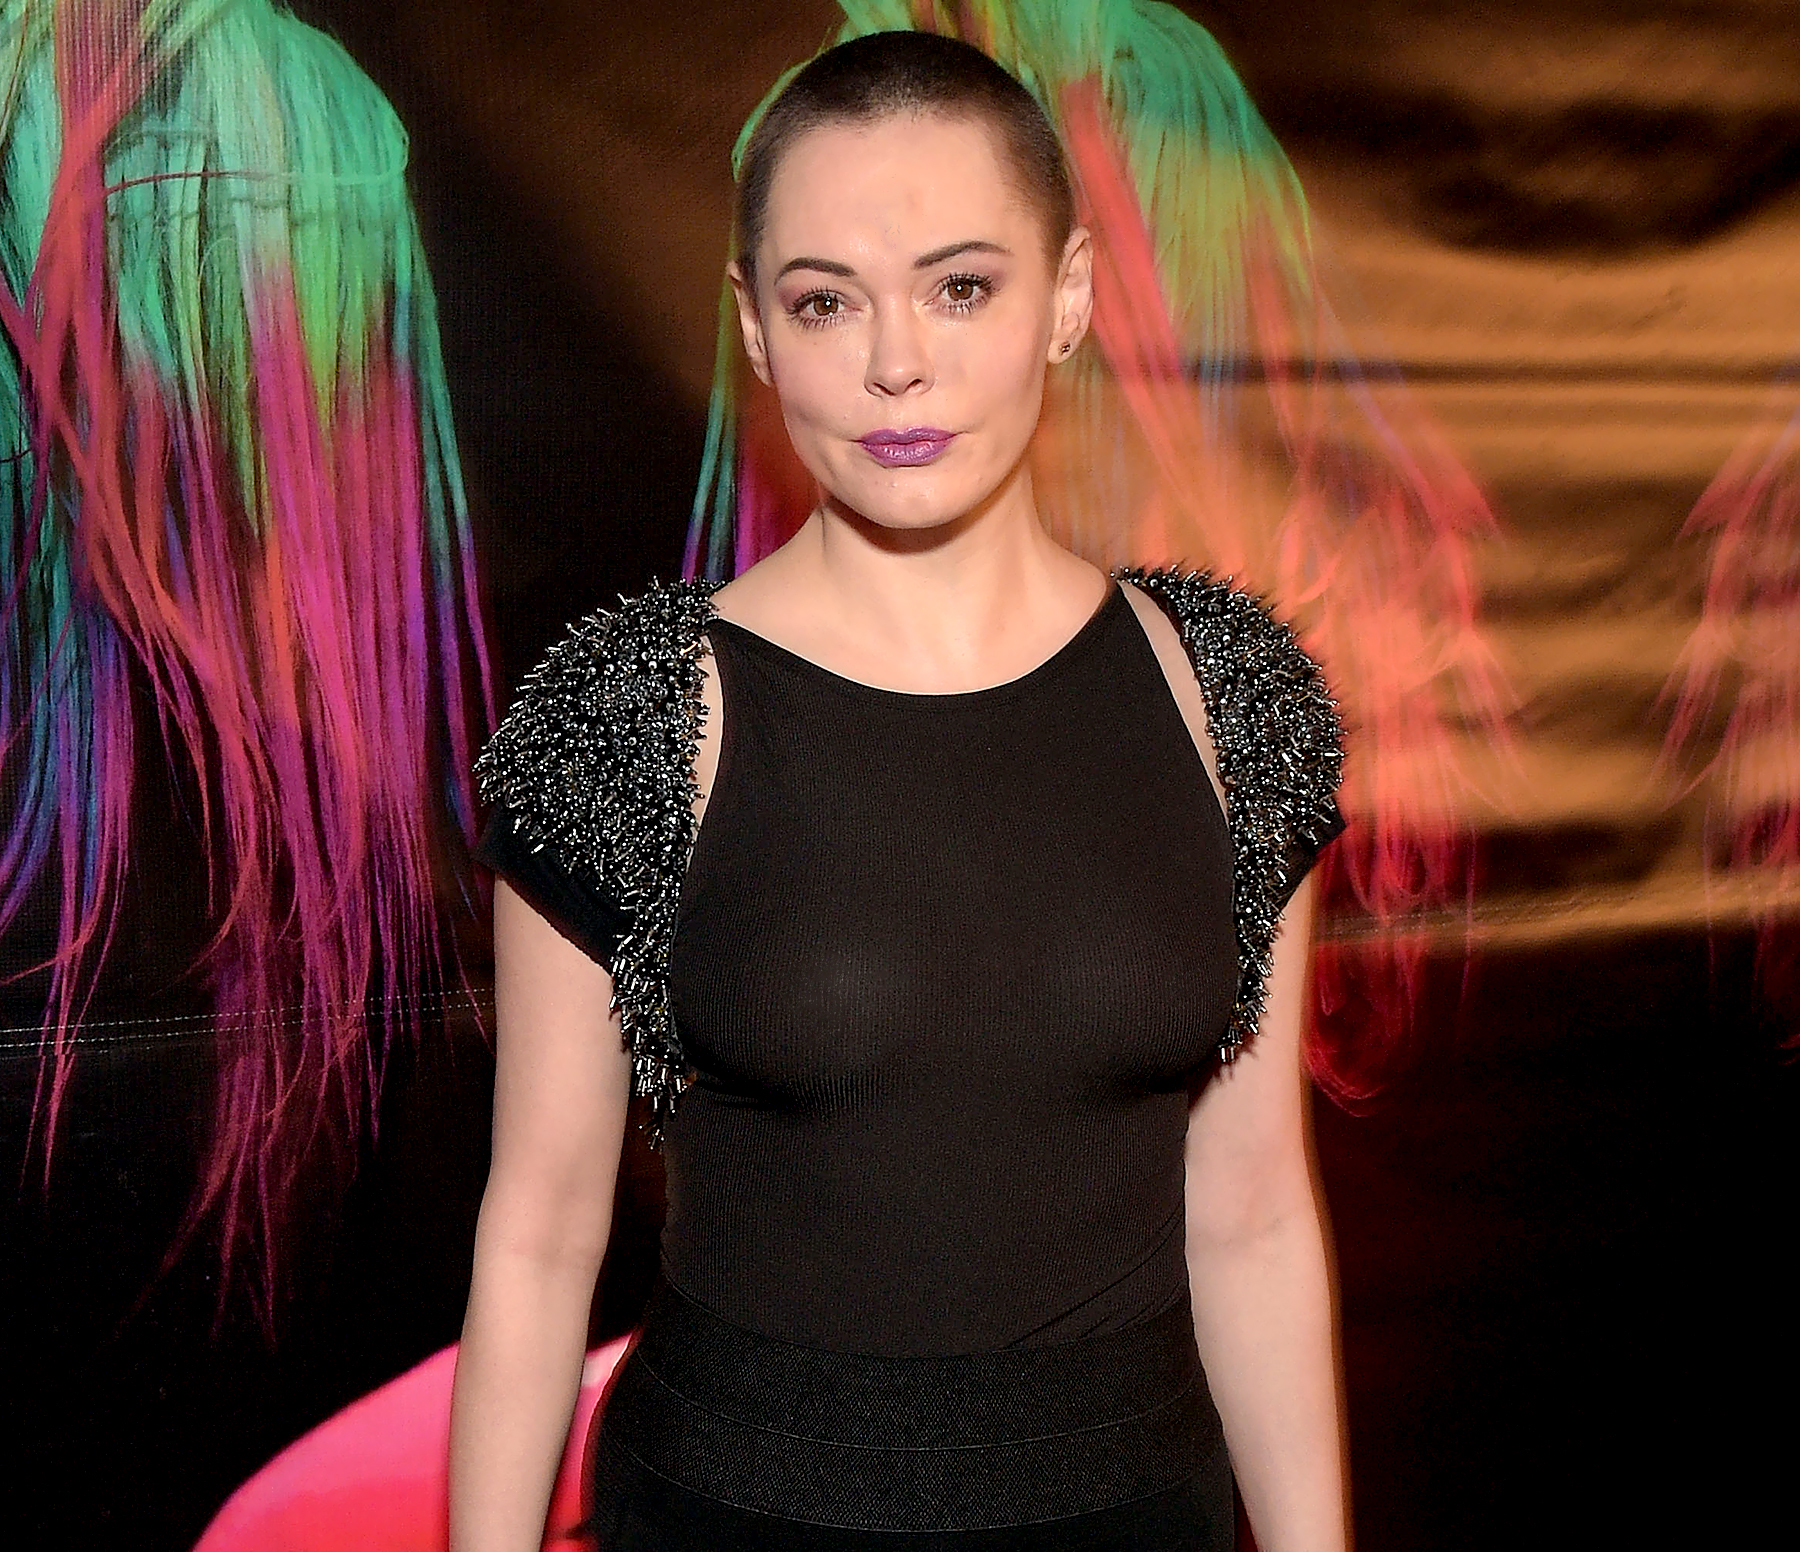 Rose McGowan Gets a Powerful New Docuseries About Abuse and Activism